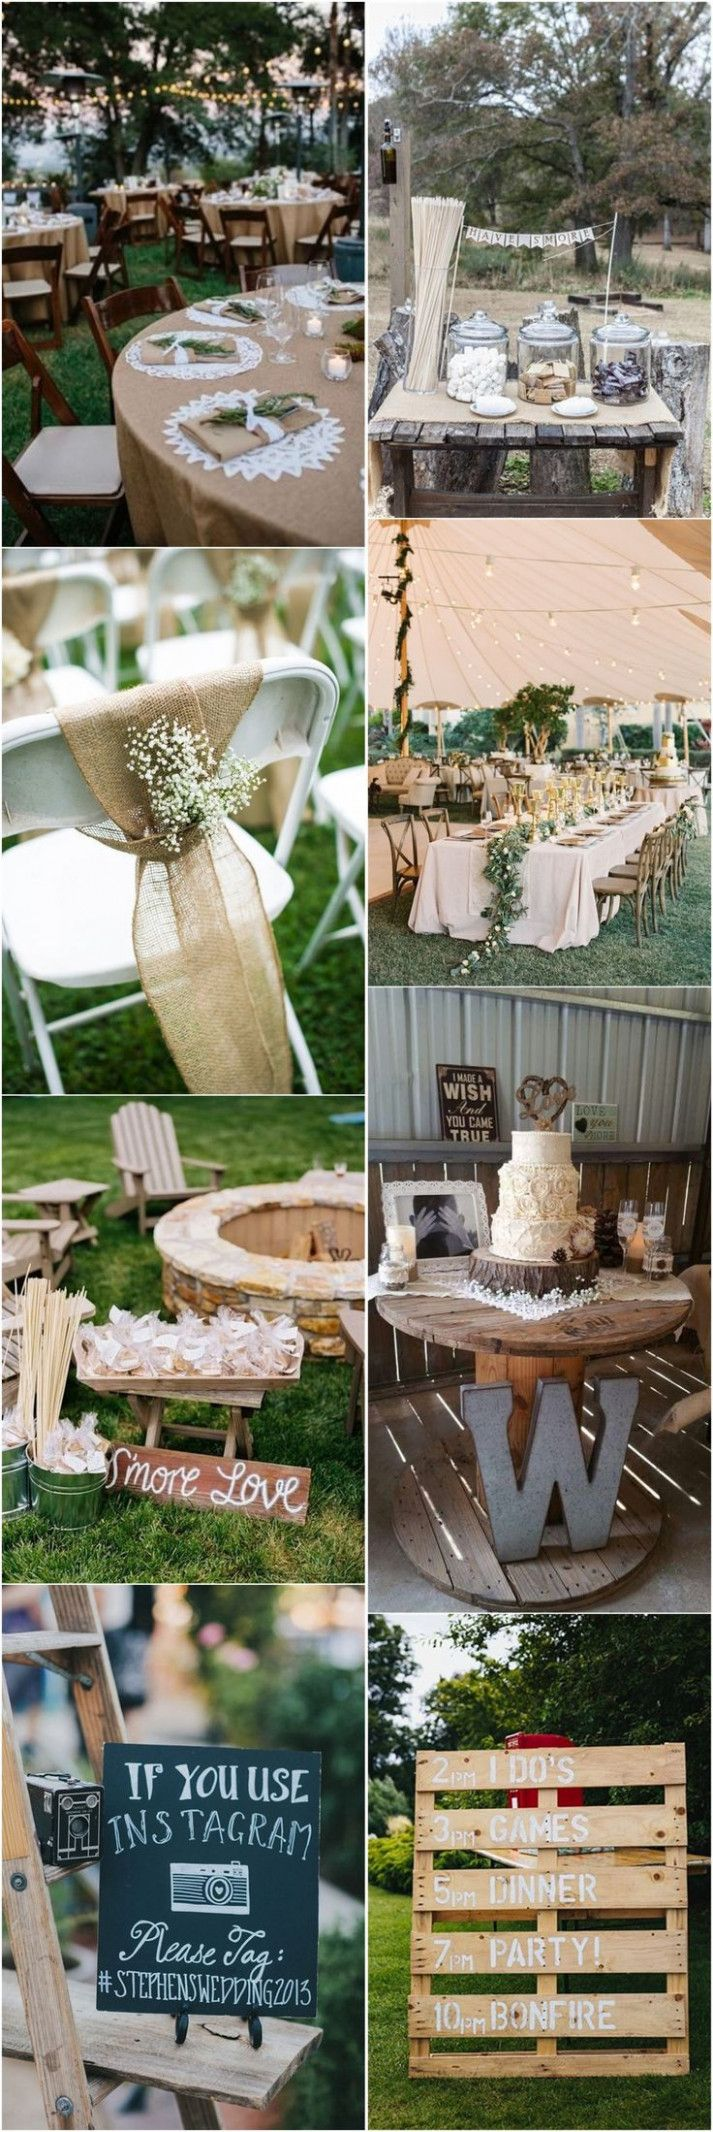 Wedding ideas on a budget rustic outdoor wedding pinterest